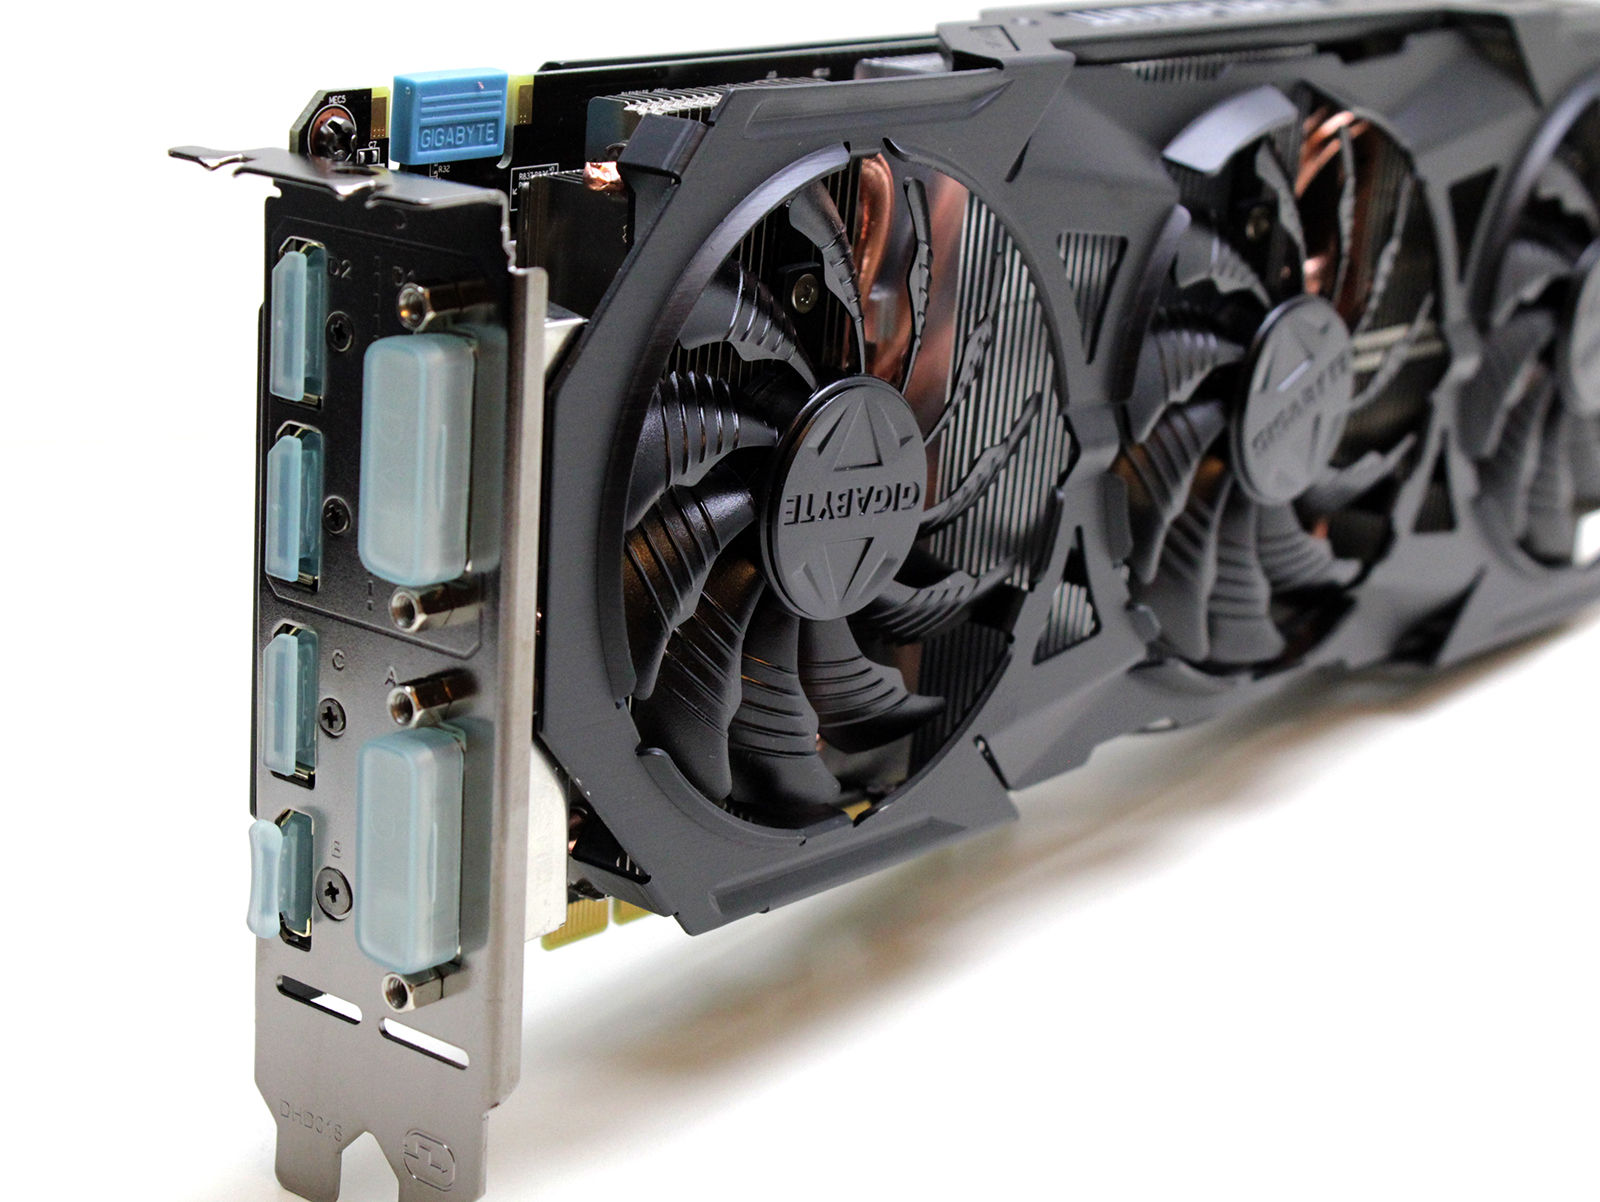 2 Gigabyte GTX 960 G1 Gaming images